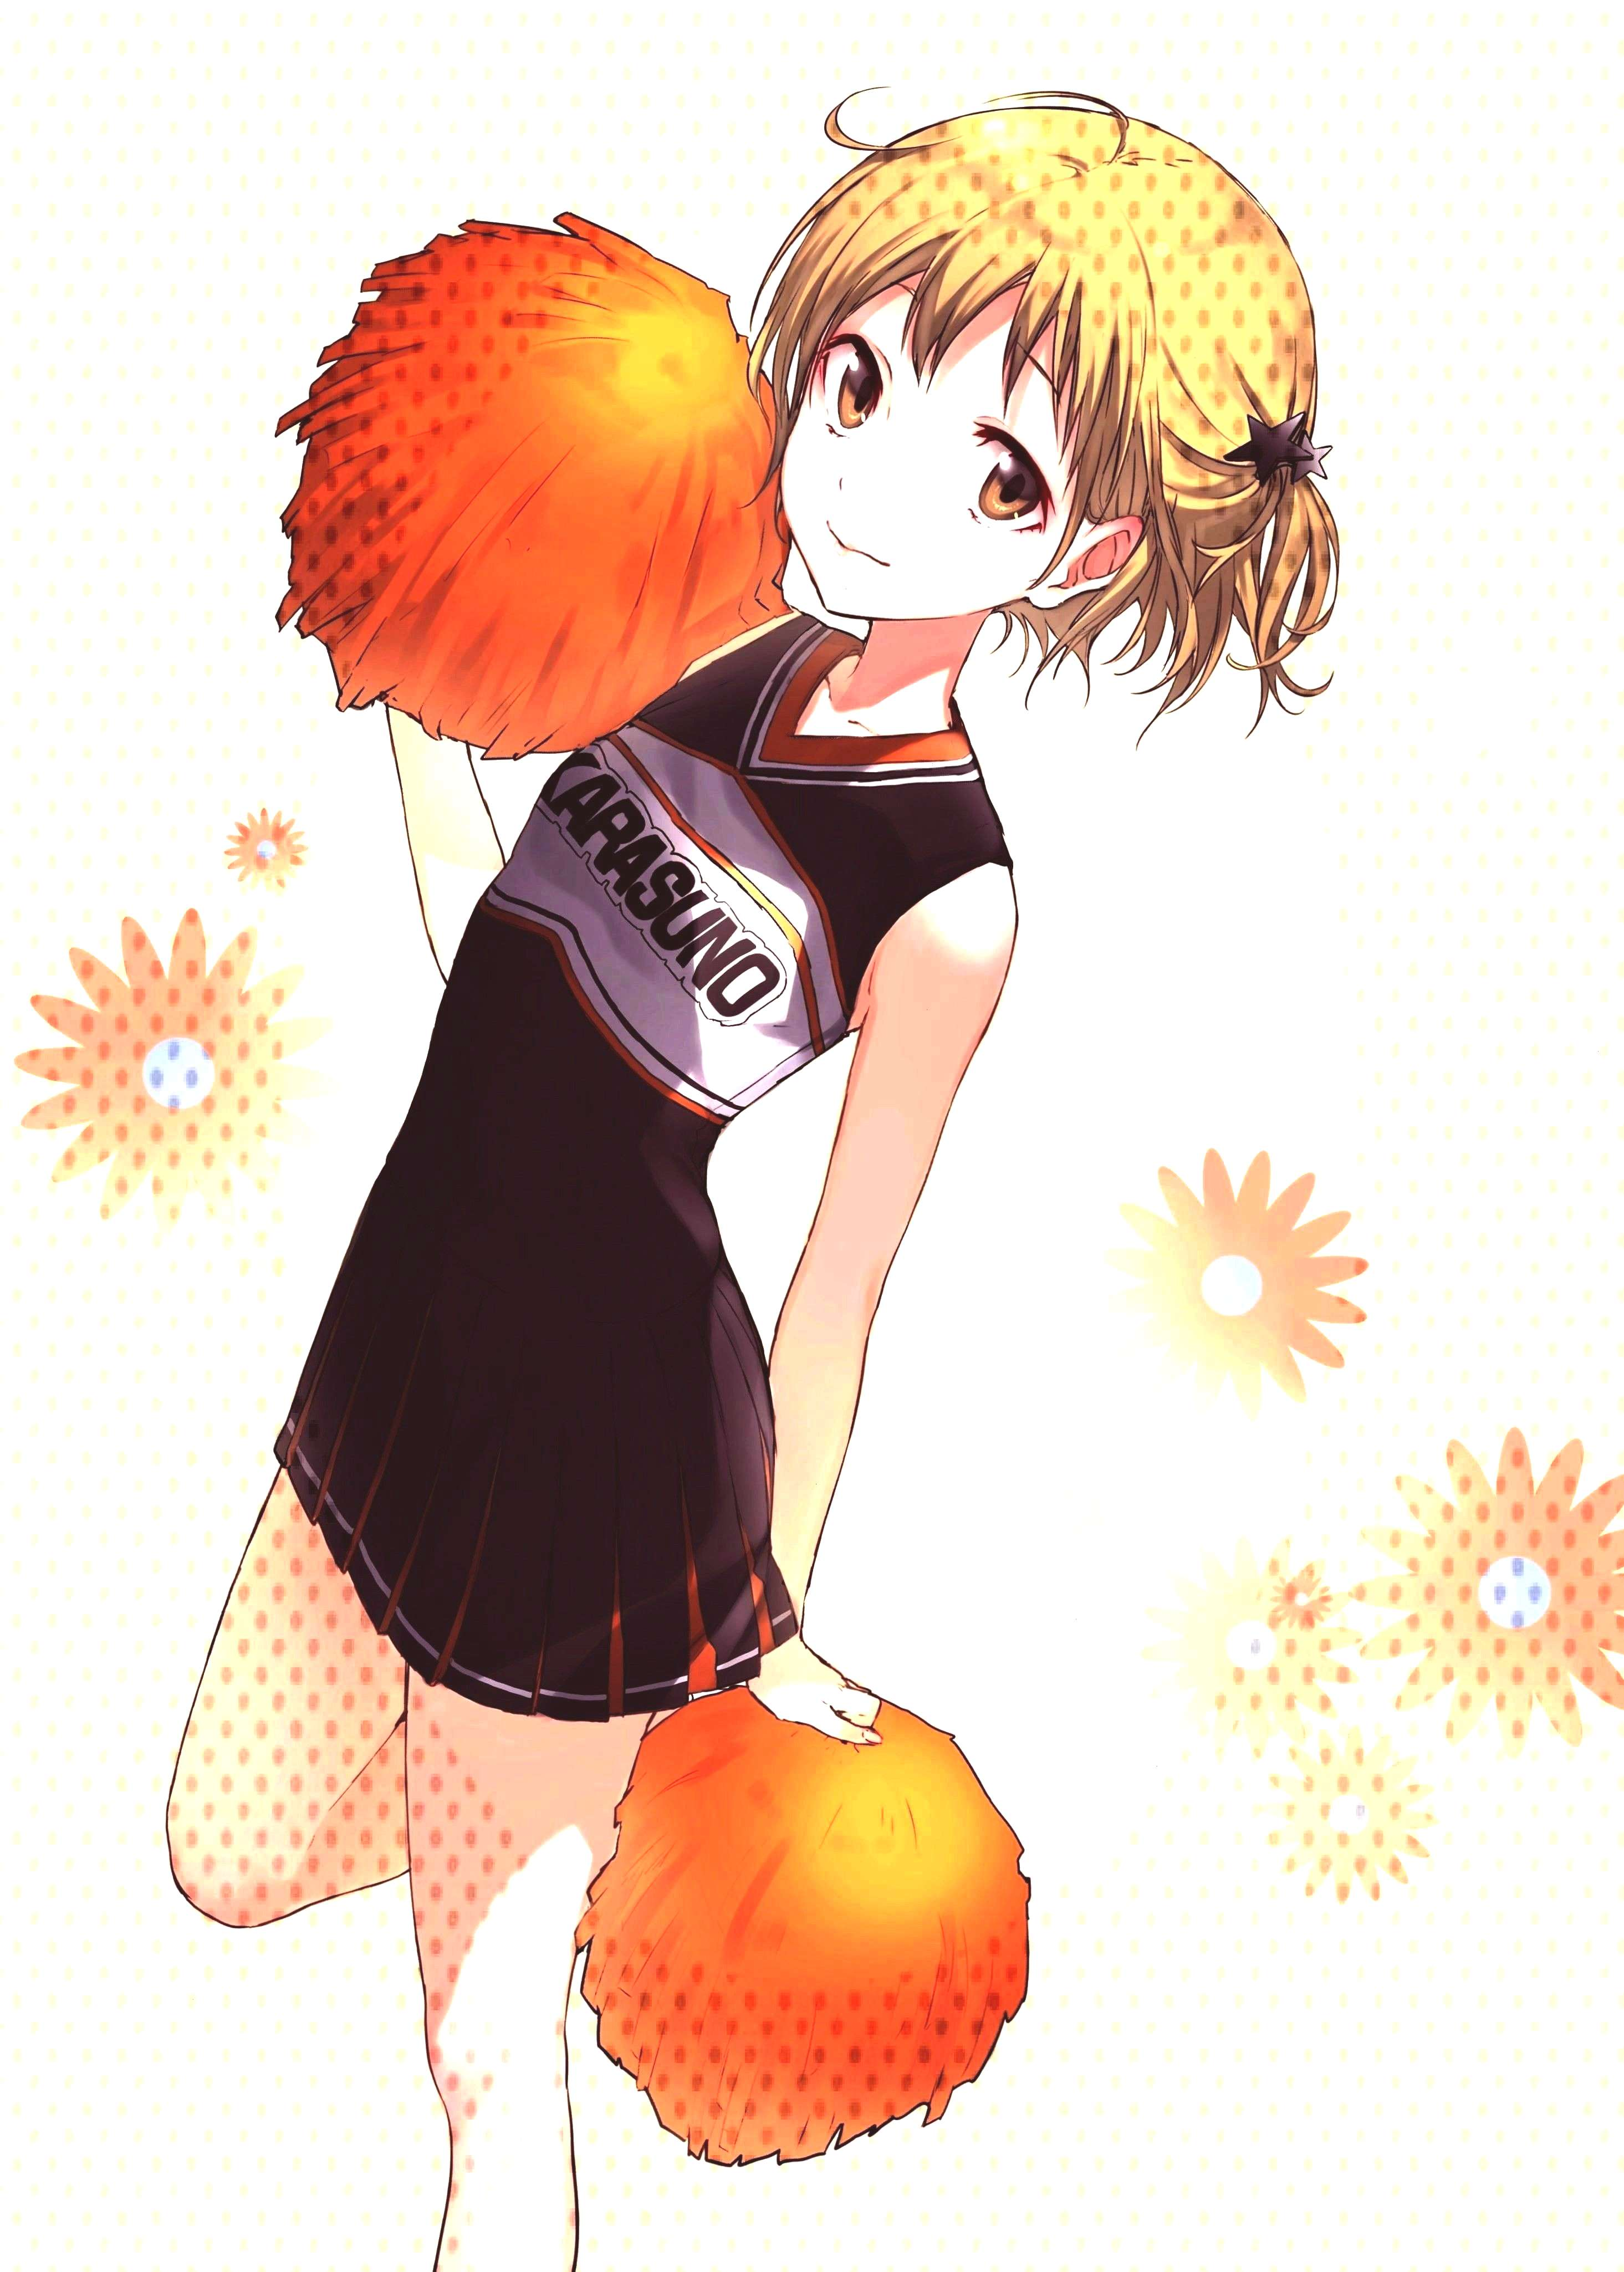 HitokaYou can find Haikyuu and more on our ime girls Yachi Hitokaanime girls Yachi HitokaYou can fi